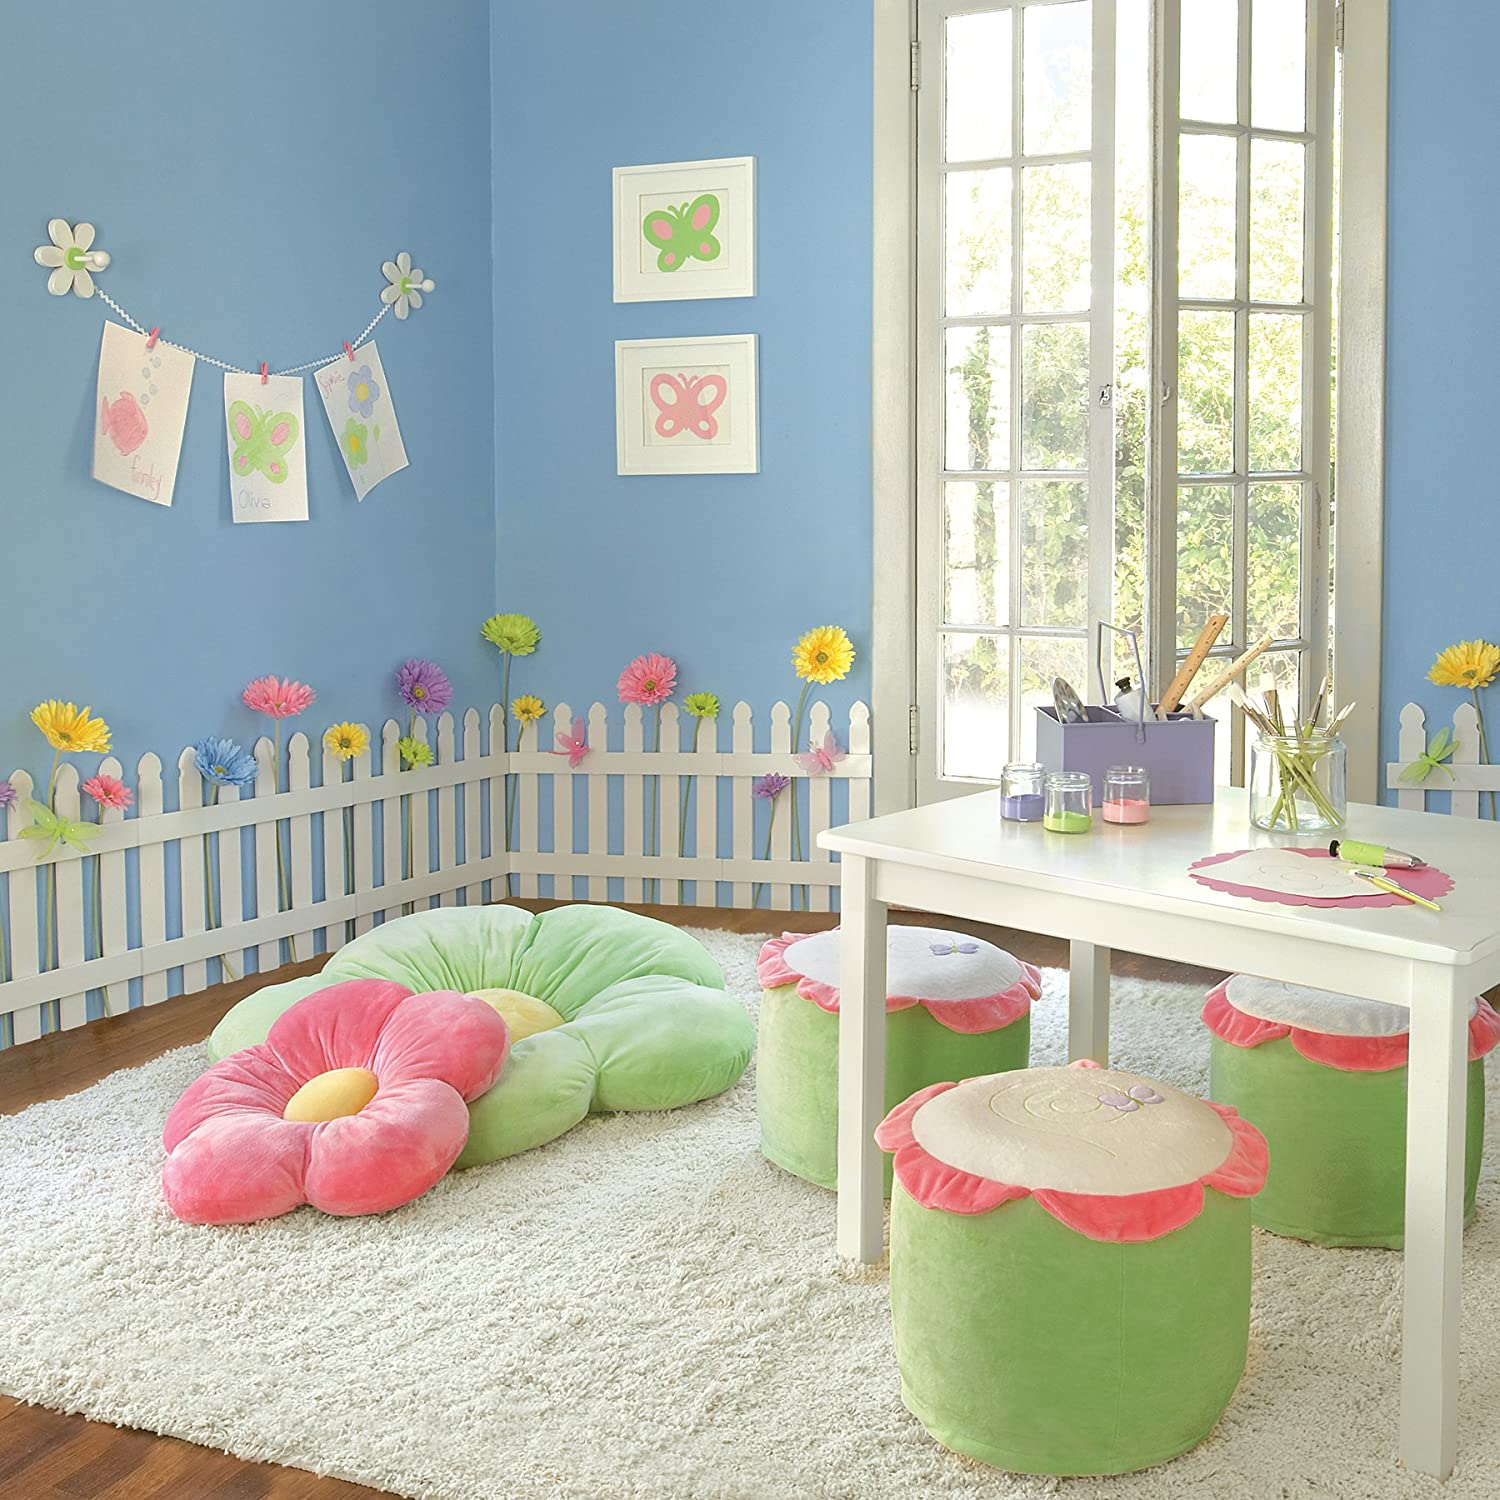 White wooden picket fences for kids room wall border What do we call a picture painted on a wall